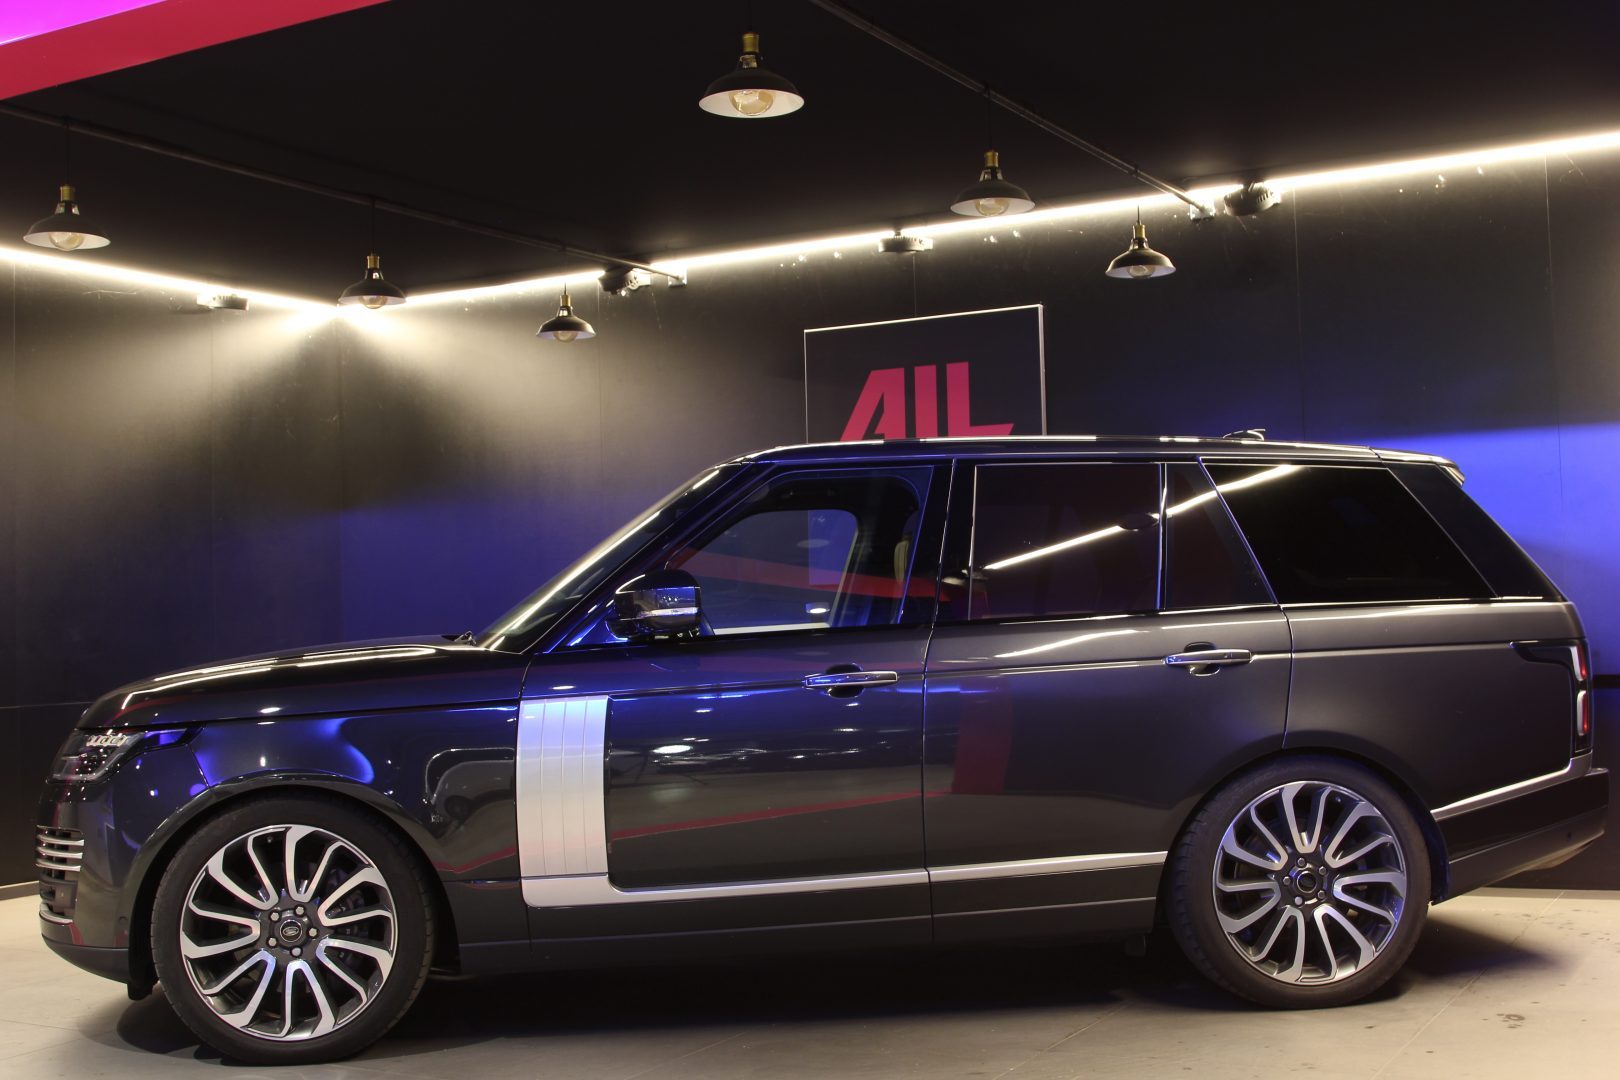 AIL Land Rover Range Rover SDV8 Autobiography 2